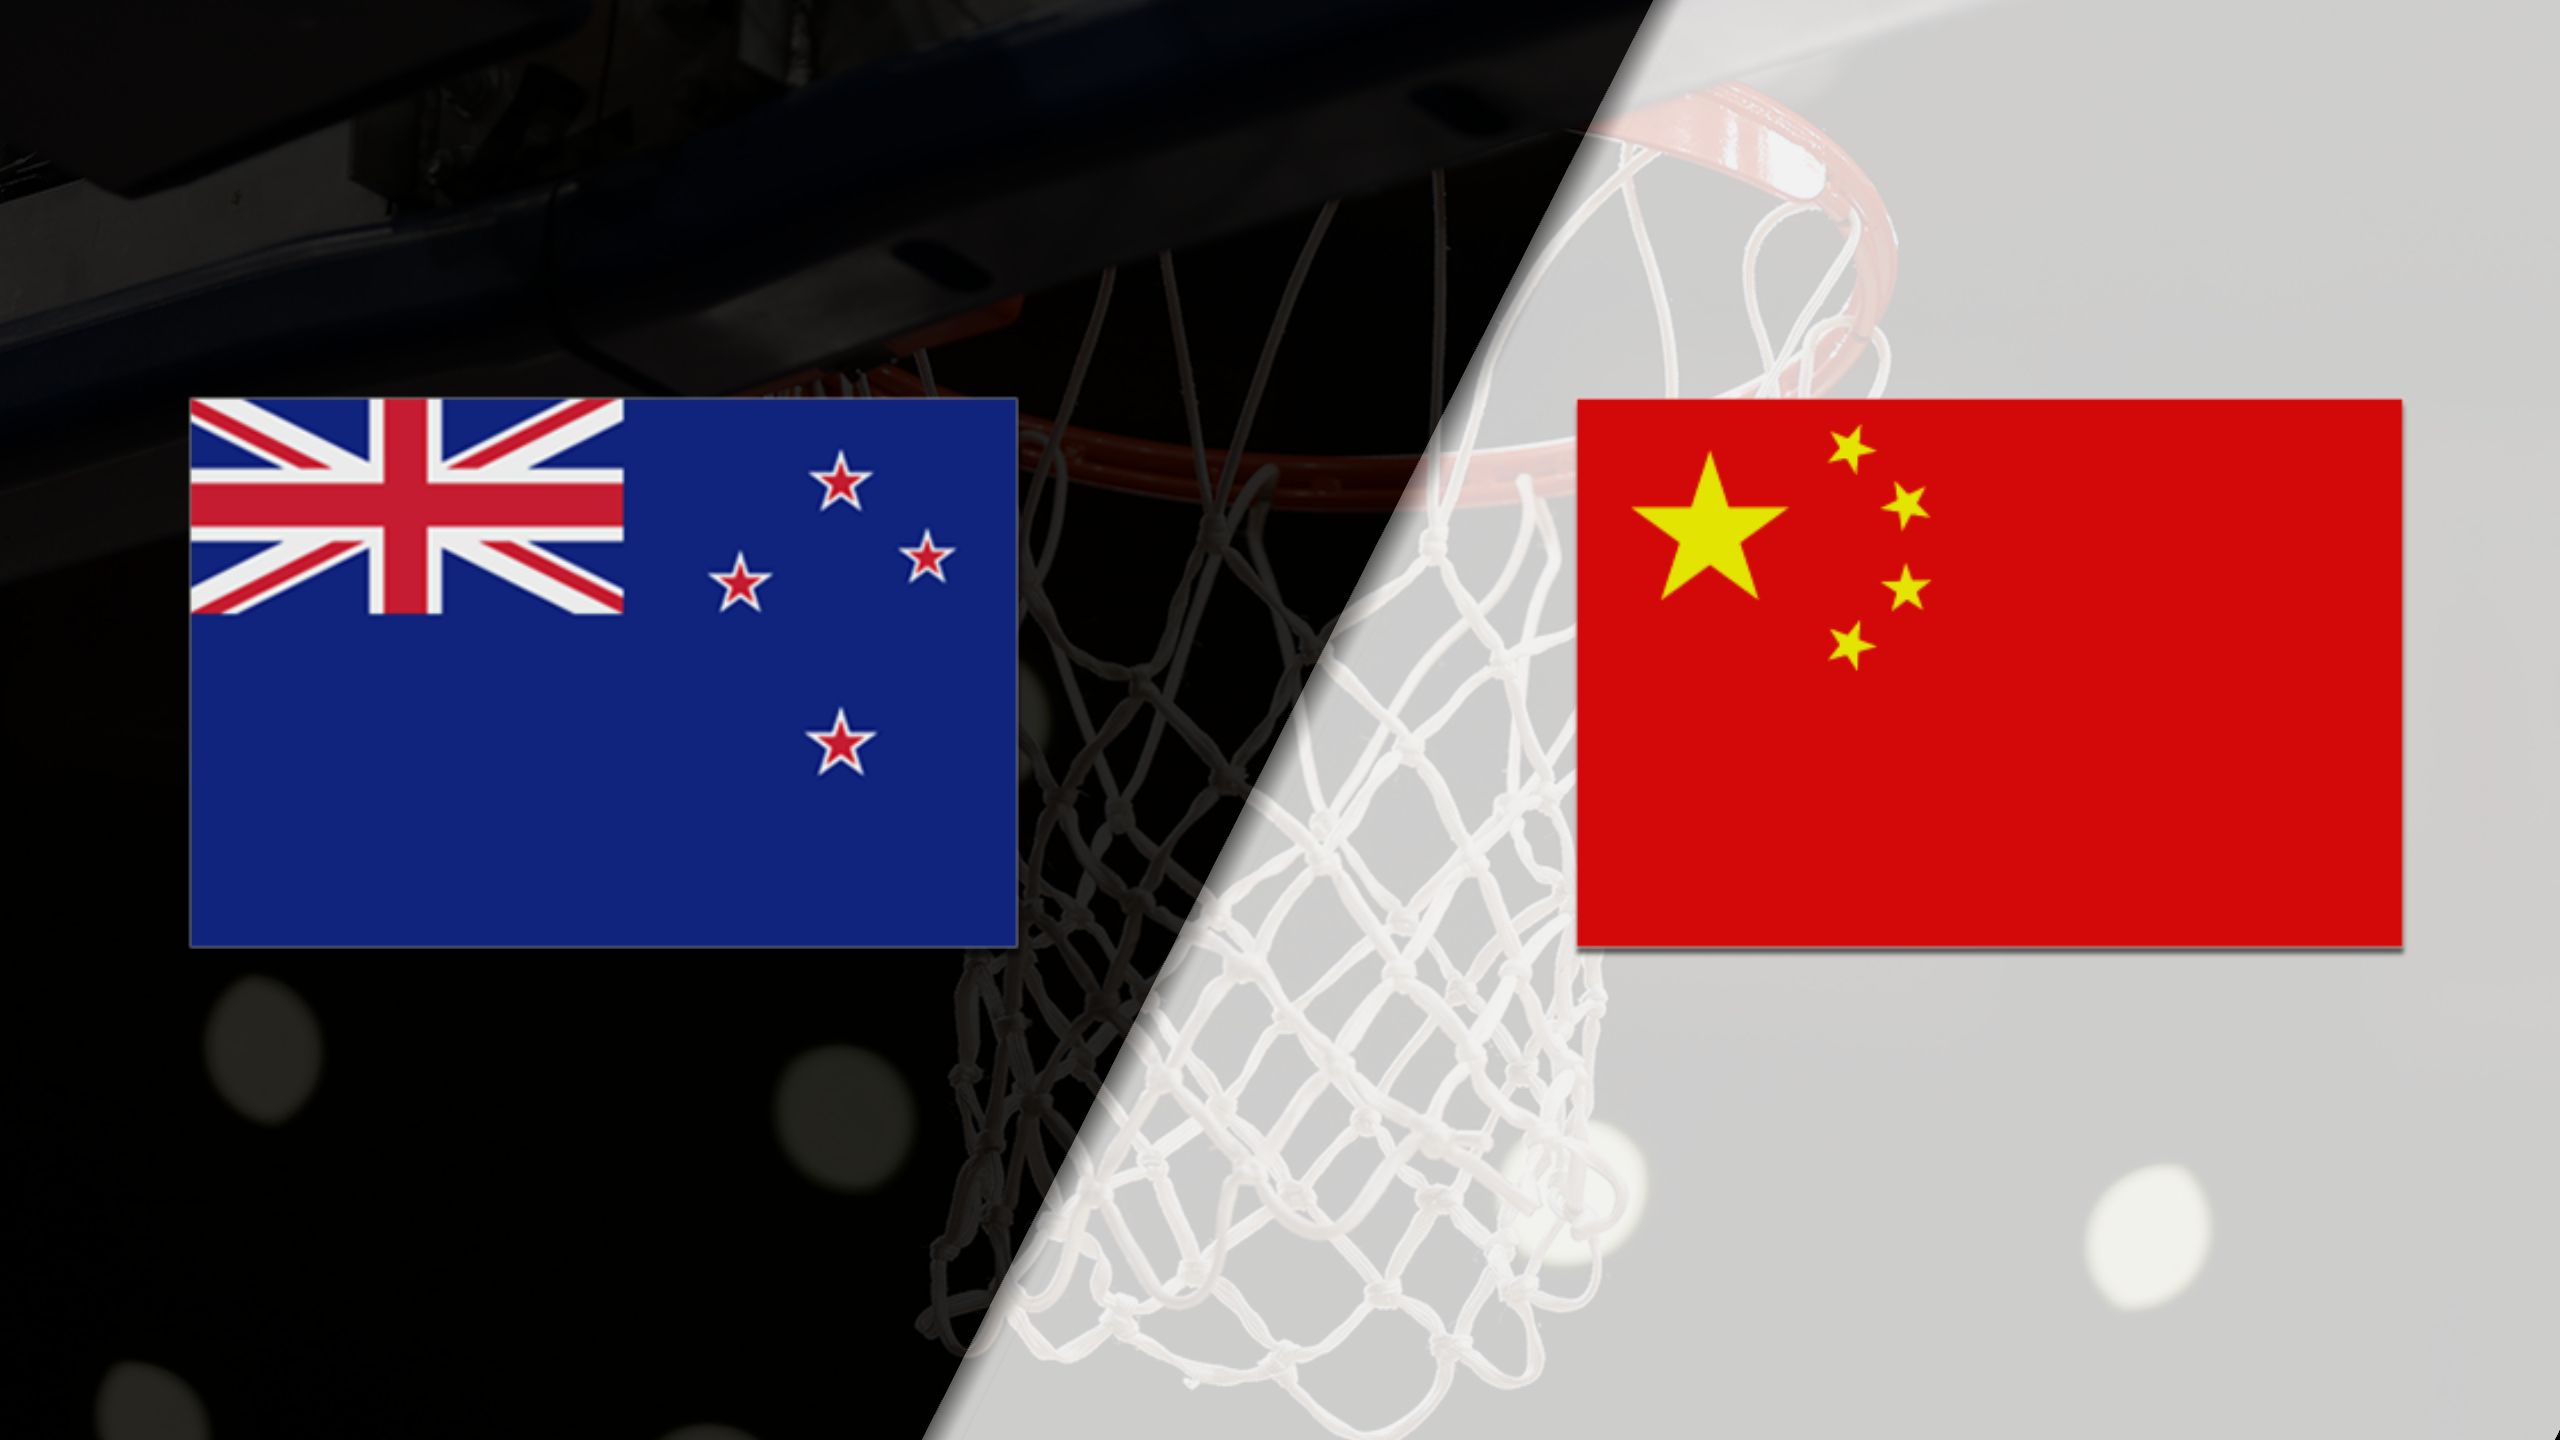 New Zealand vs. China (FIBA World Cup 2019 Qualifier)